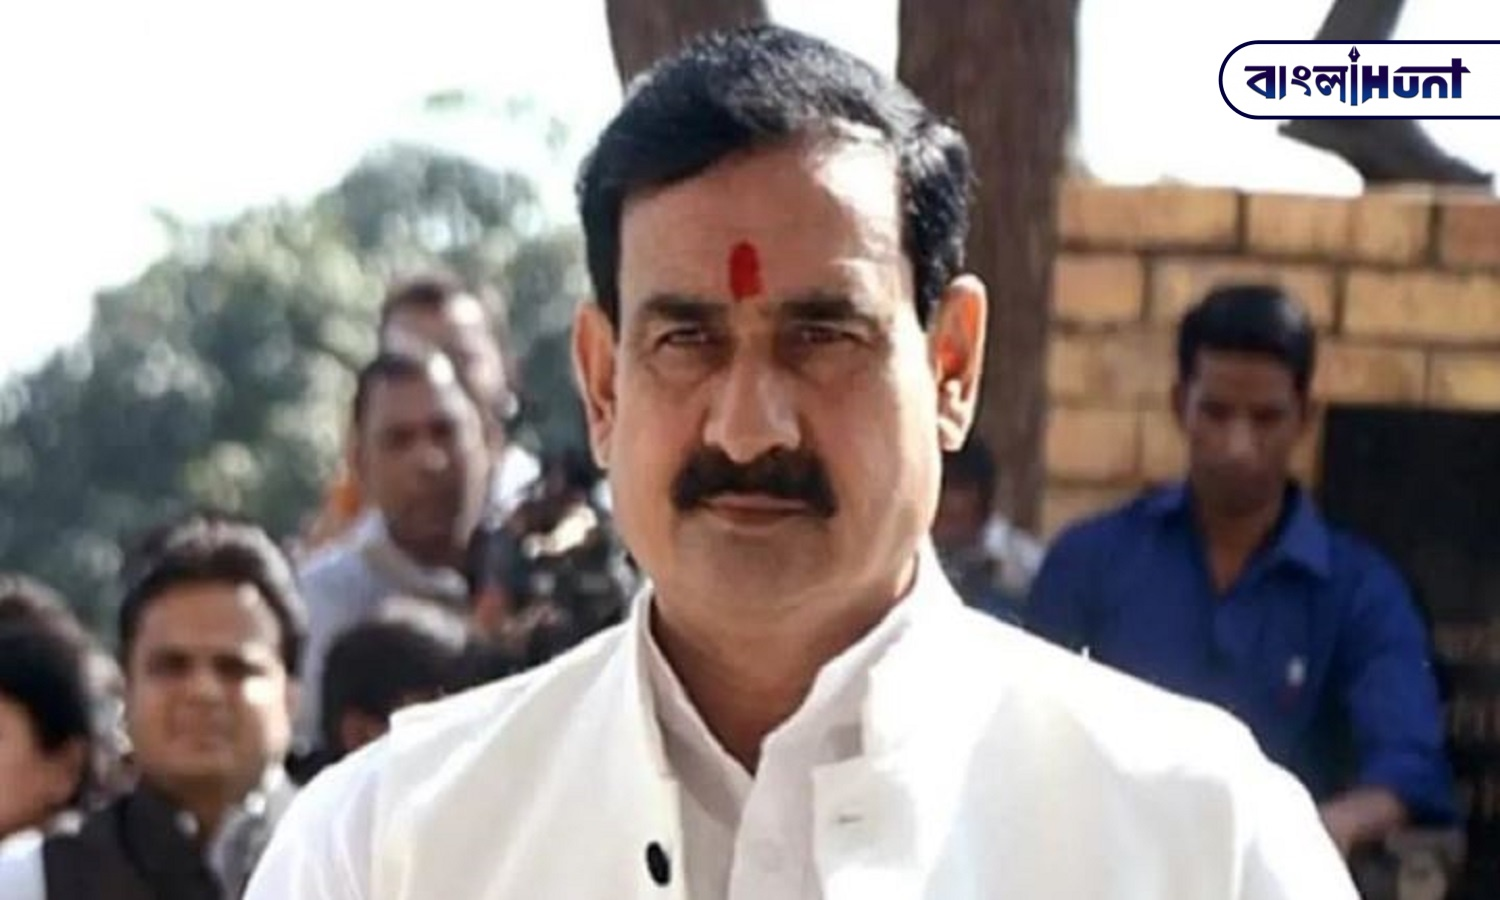 State to take tough action against love jihad in next session, says Madhya Pradesh Home Minister